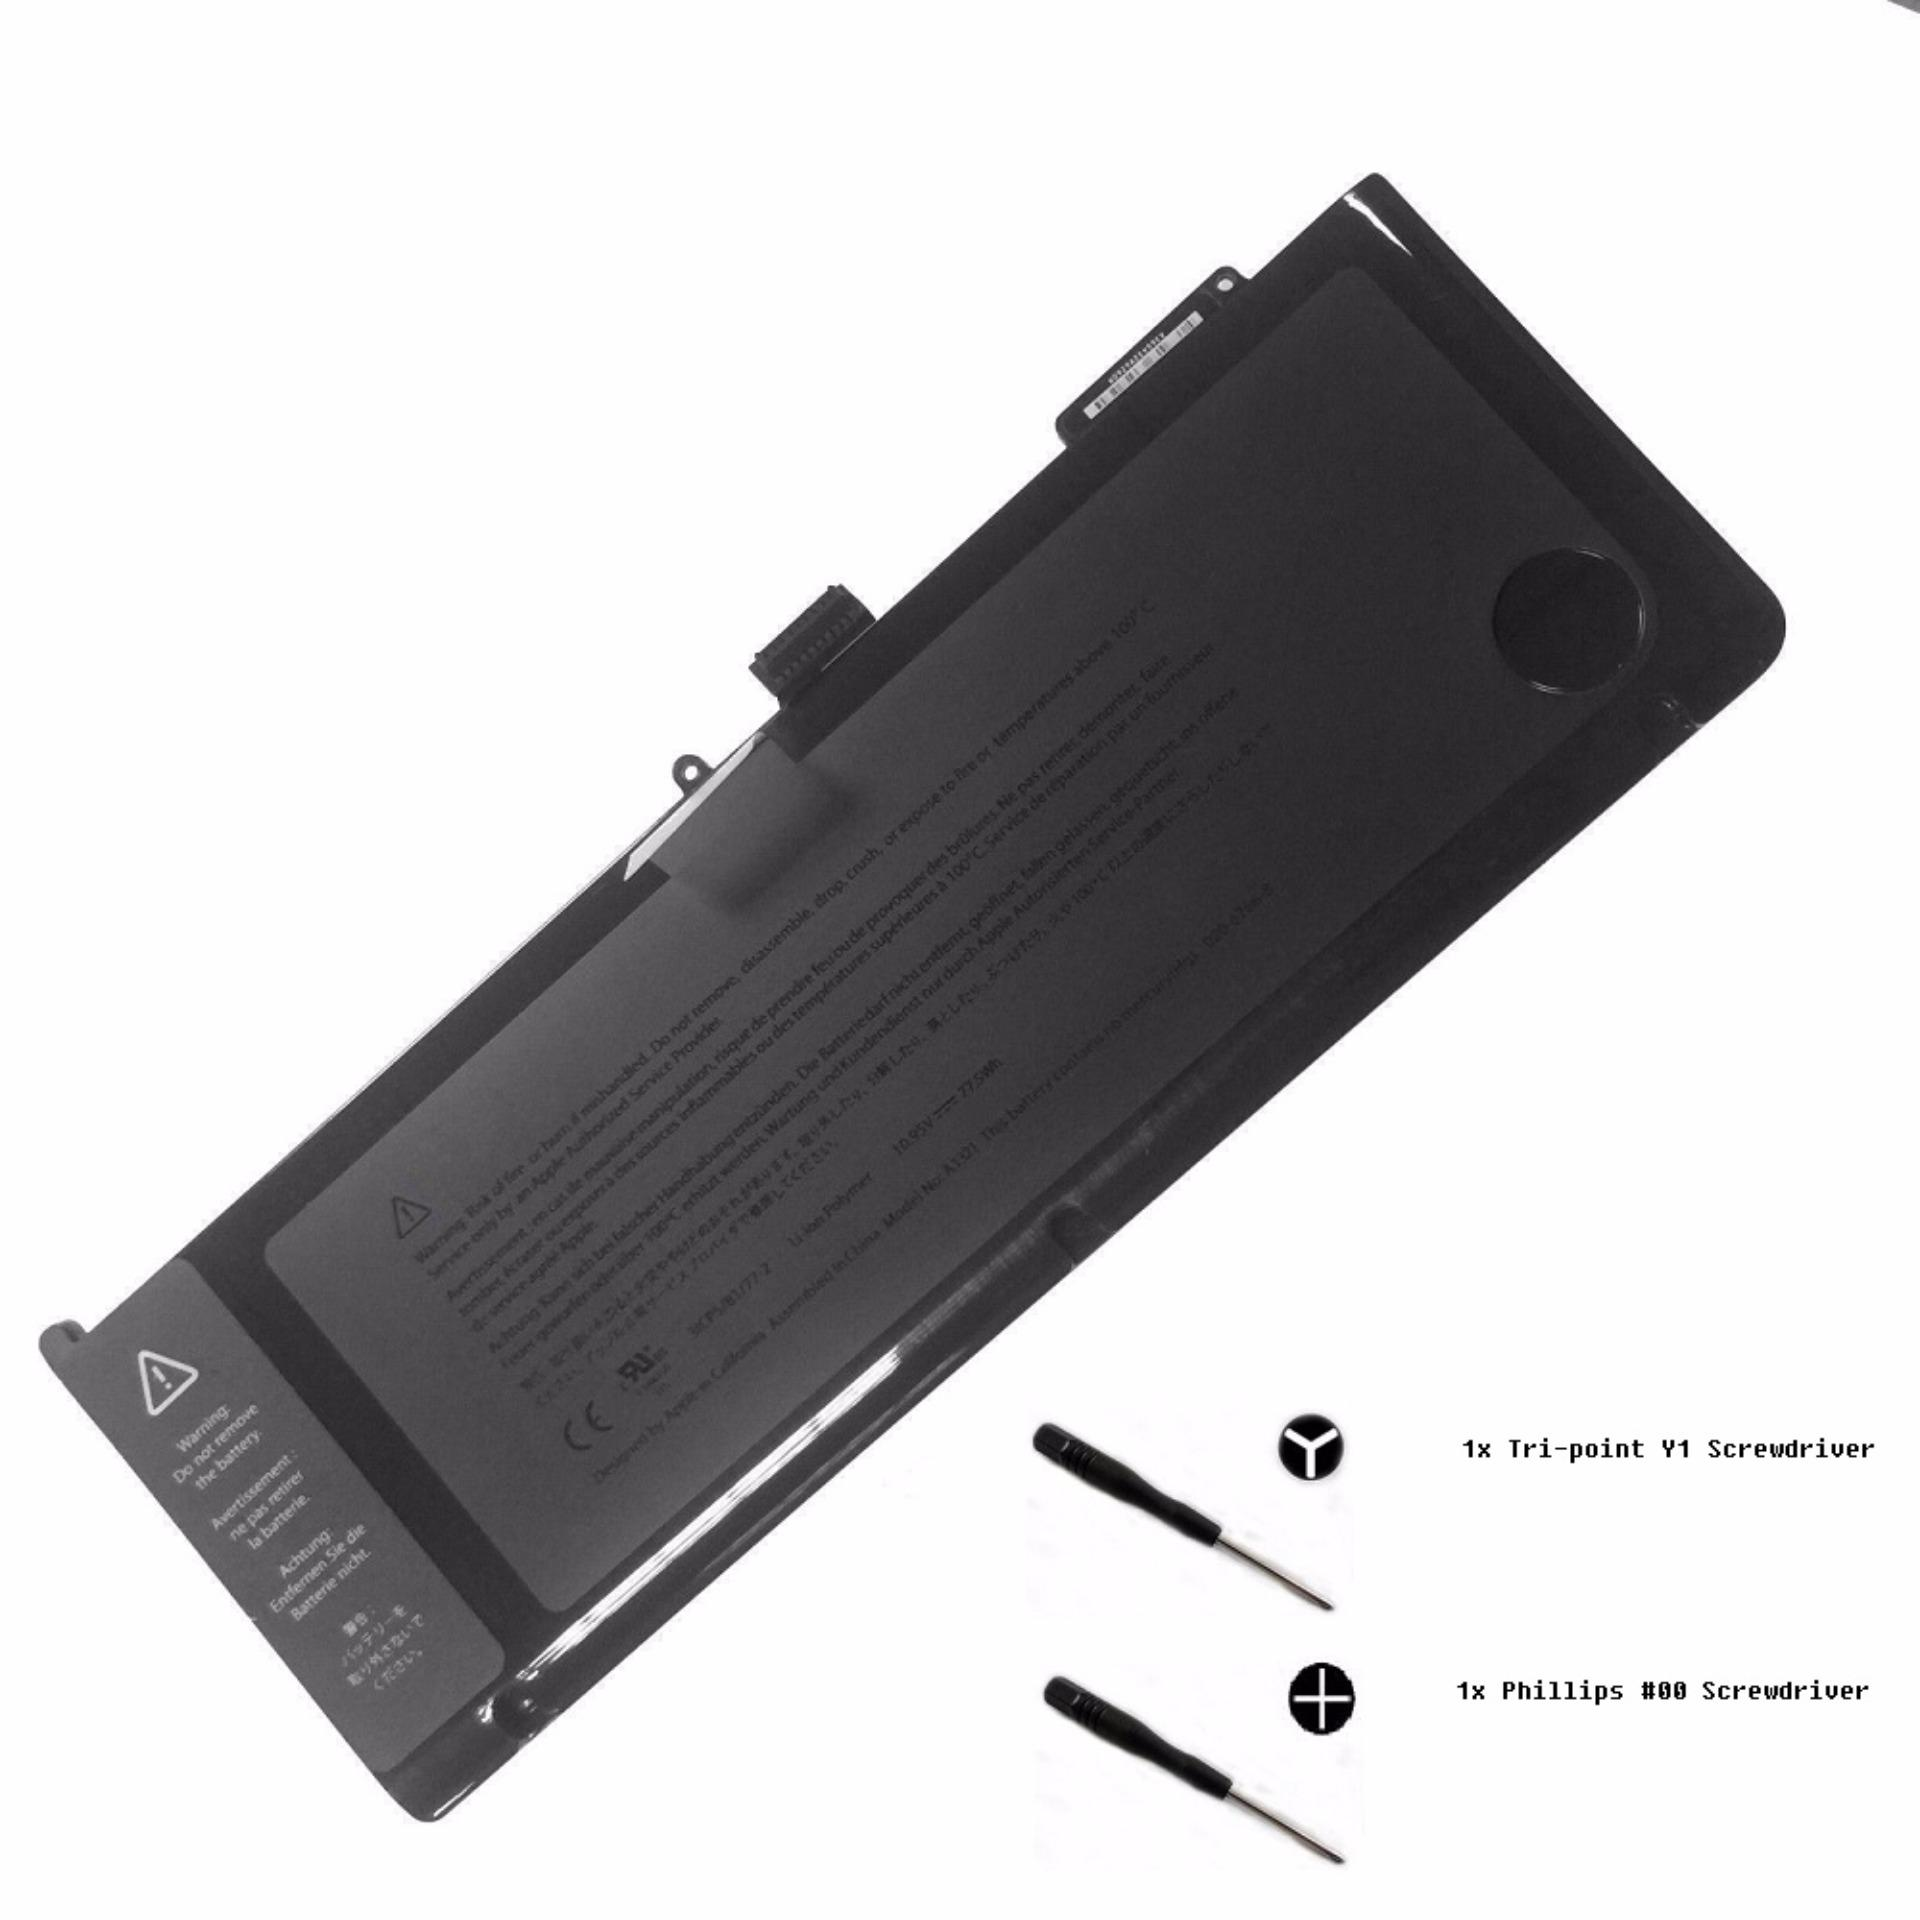 MacBook Pro 15-inch Unibody (Mid 2009, Mid 2010) Battery (A1321)